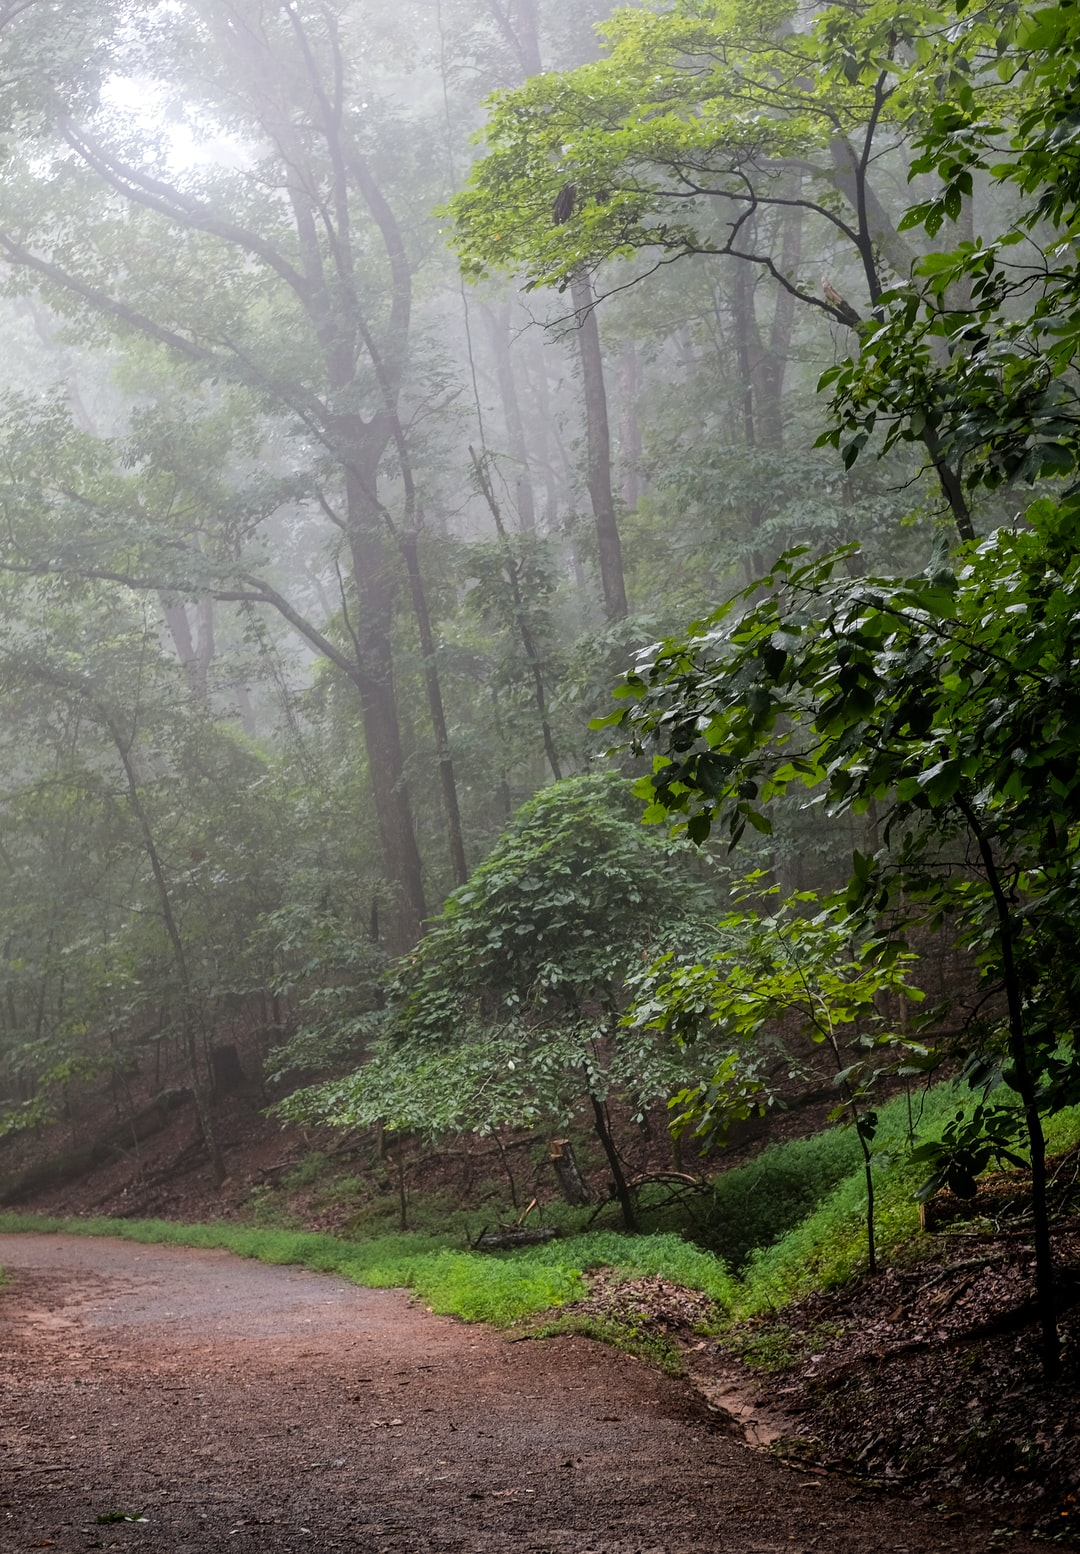 Foggy mountain trail with trees